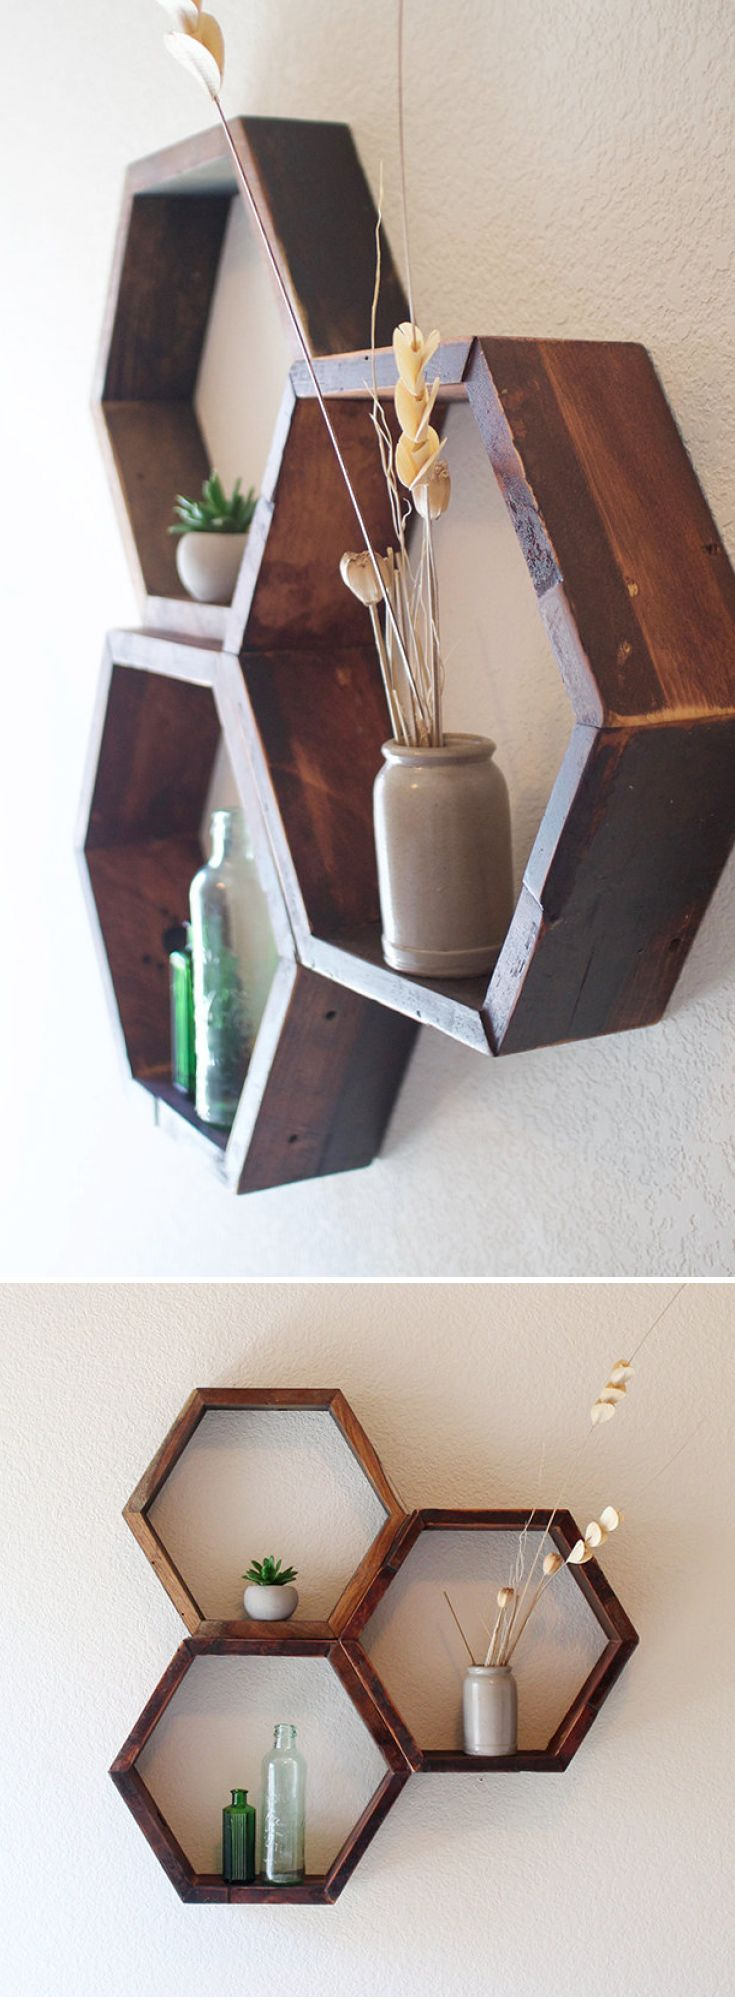 DIY Plans for Hexagon Shelves #setinstains